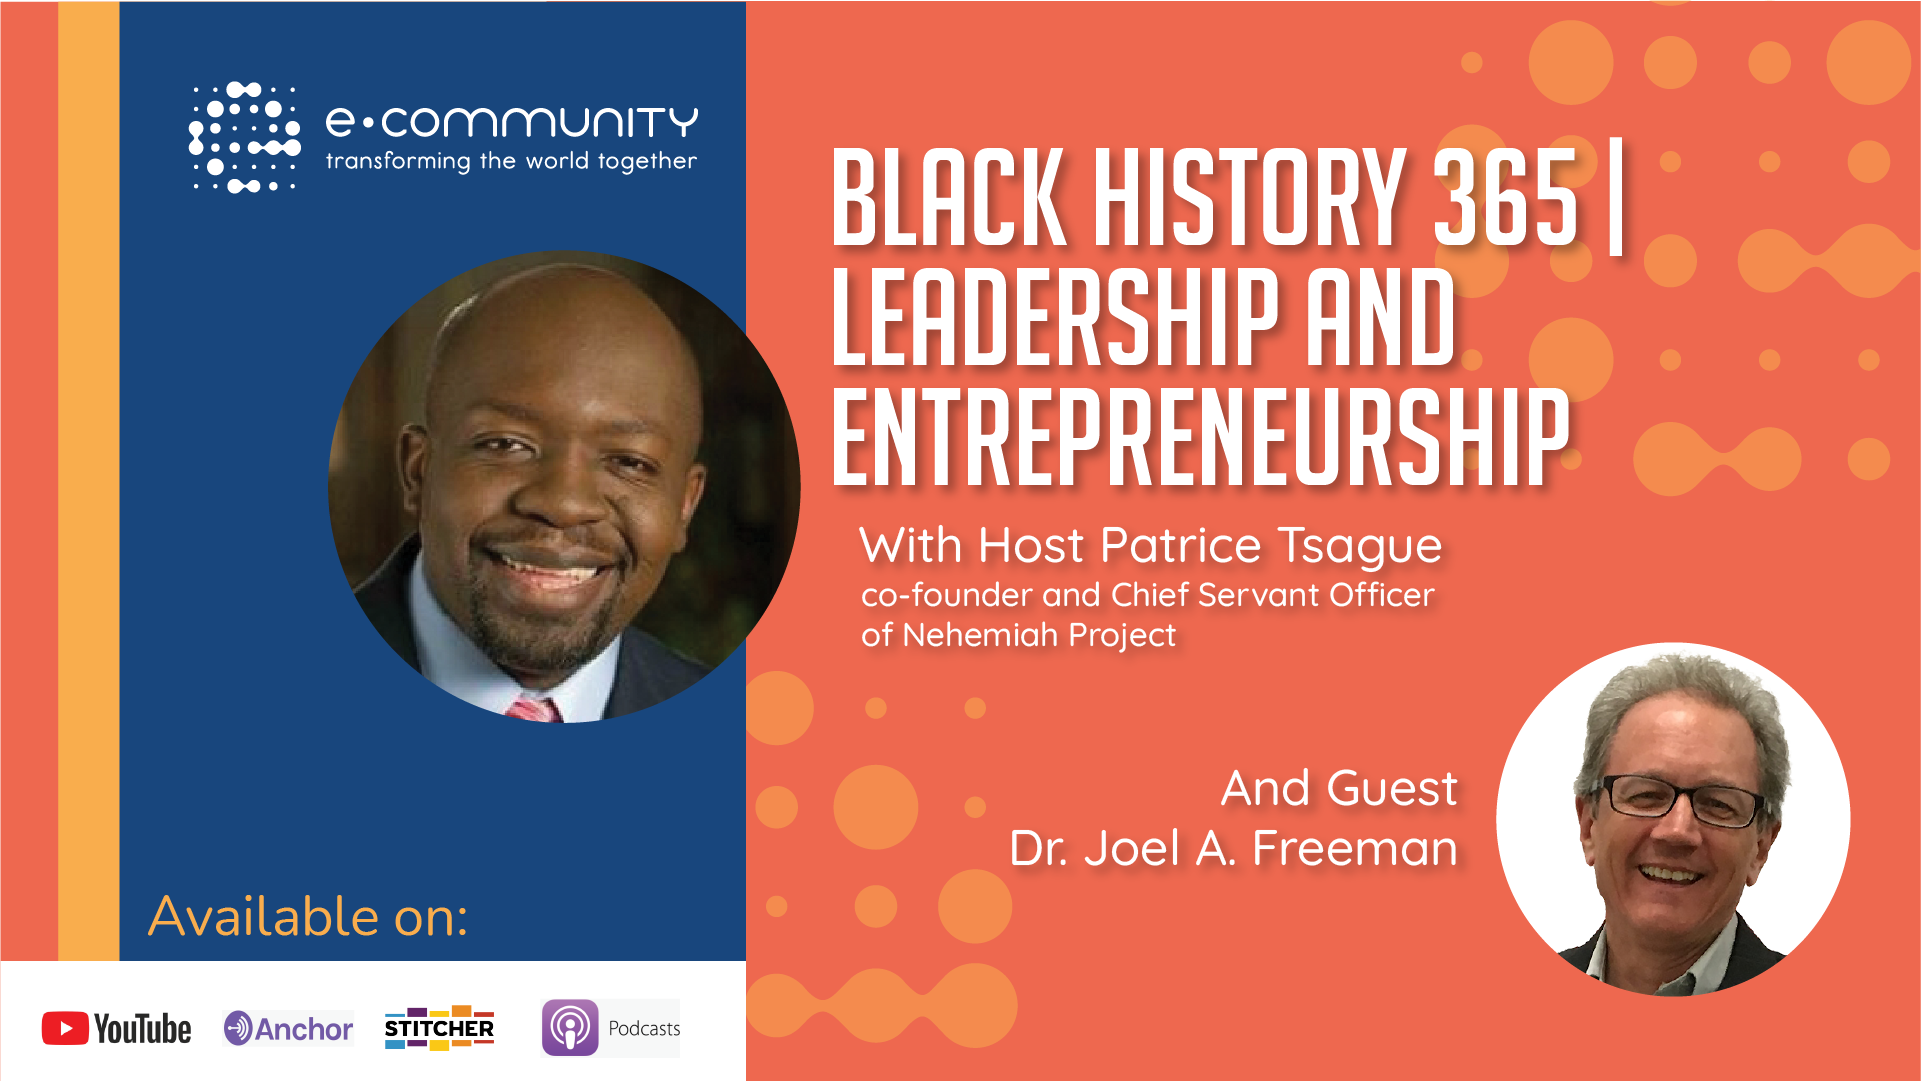 Black History 365 | Leadership and Entrepreneurship